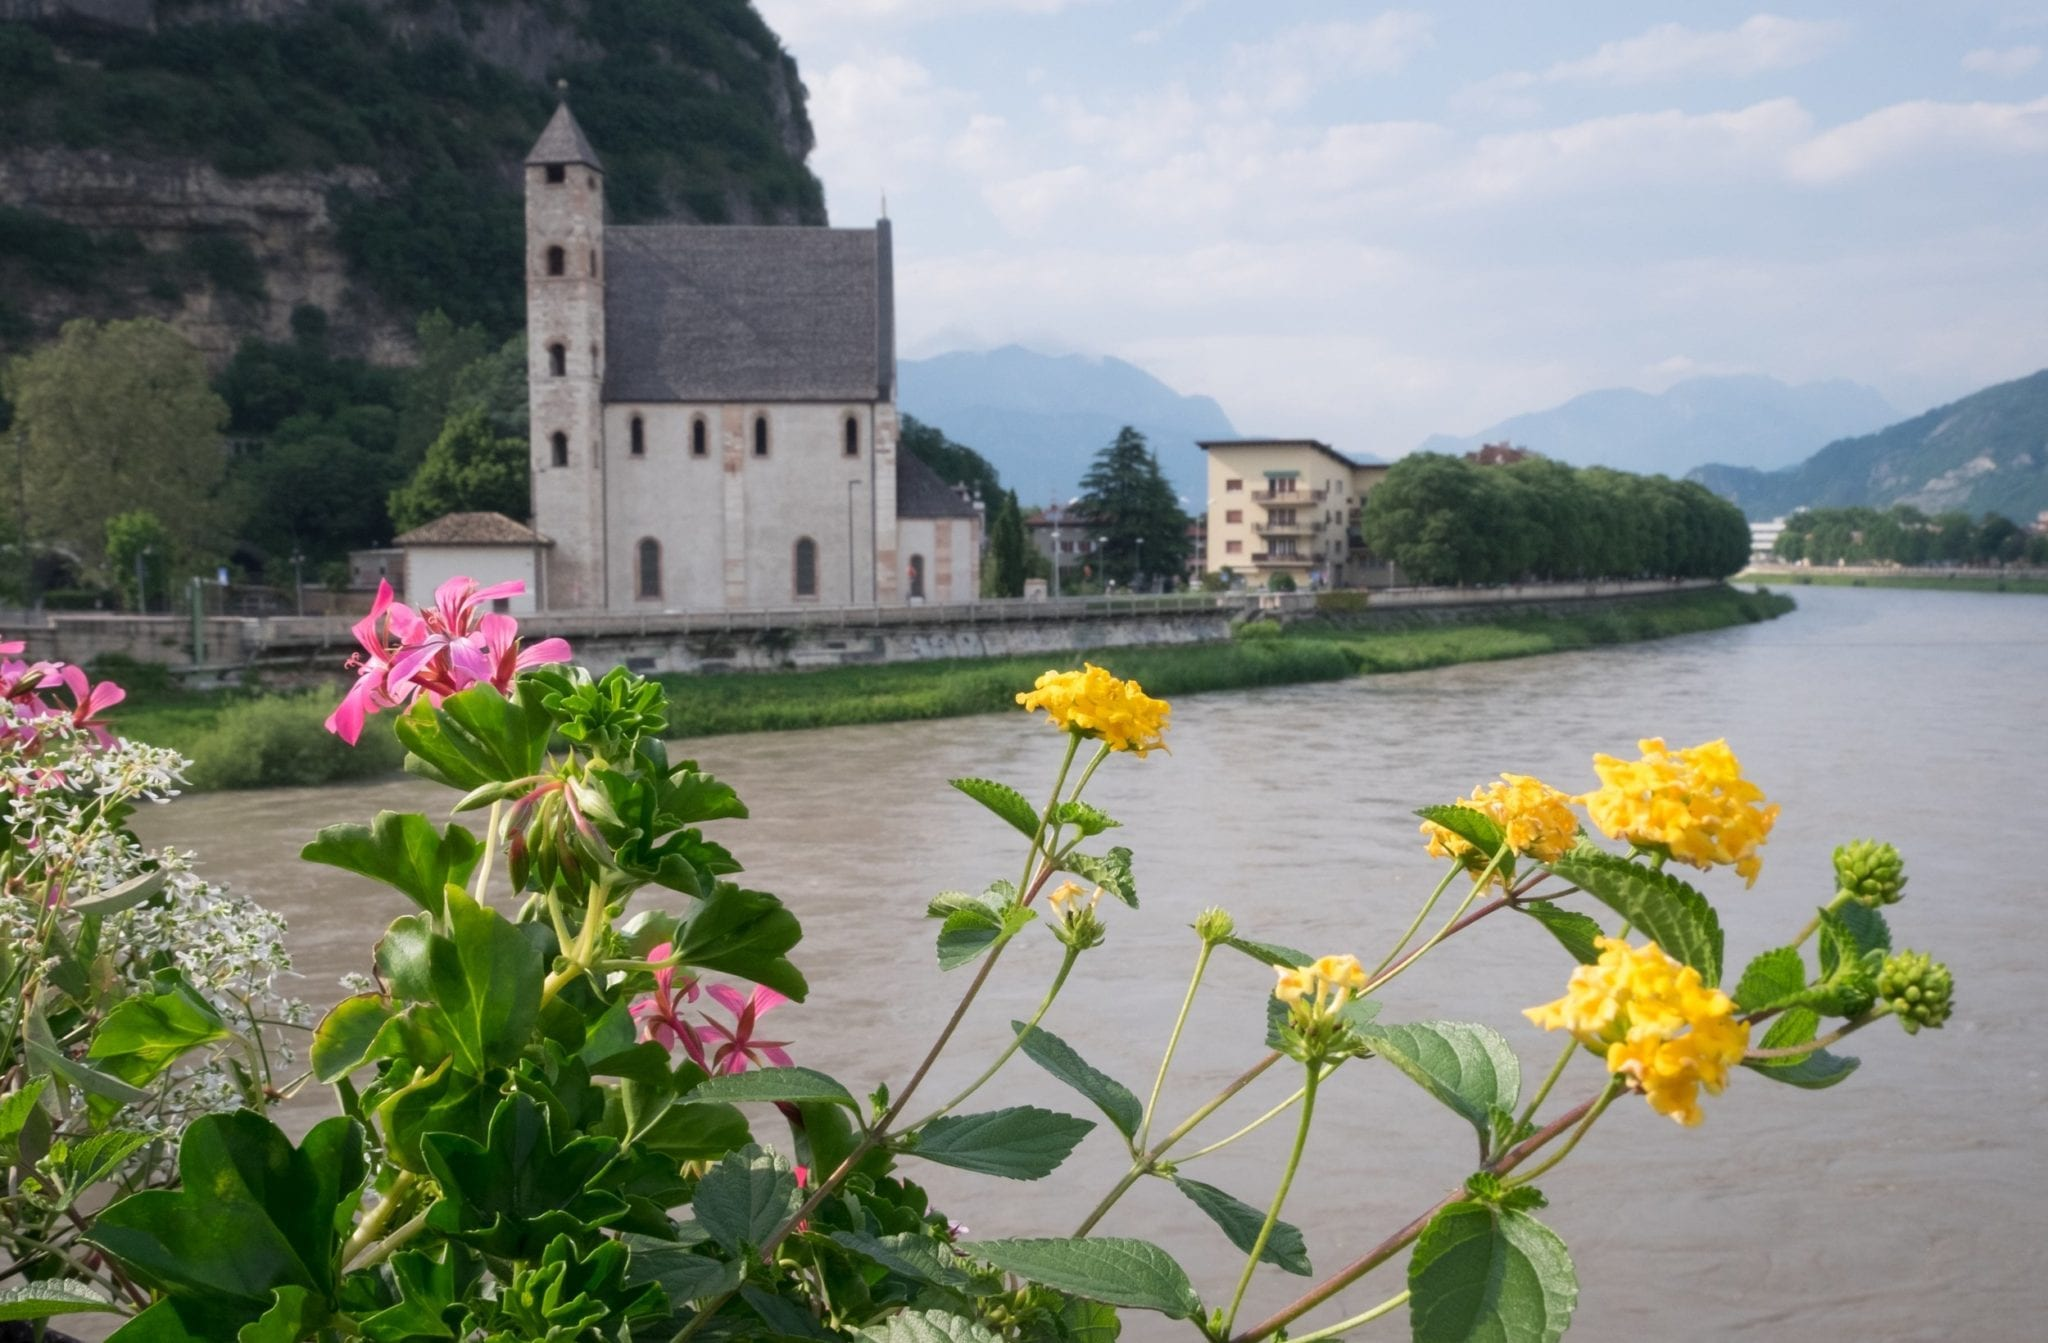 Yellow and pink flowers blooming from a blow in the foreground; a tiny church and river in the background. In Trento, Italy.